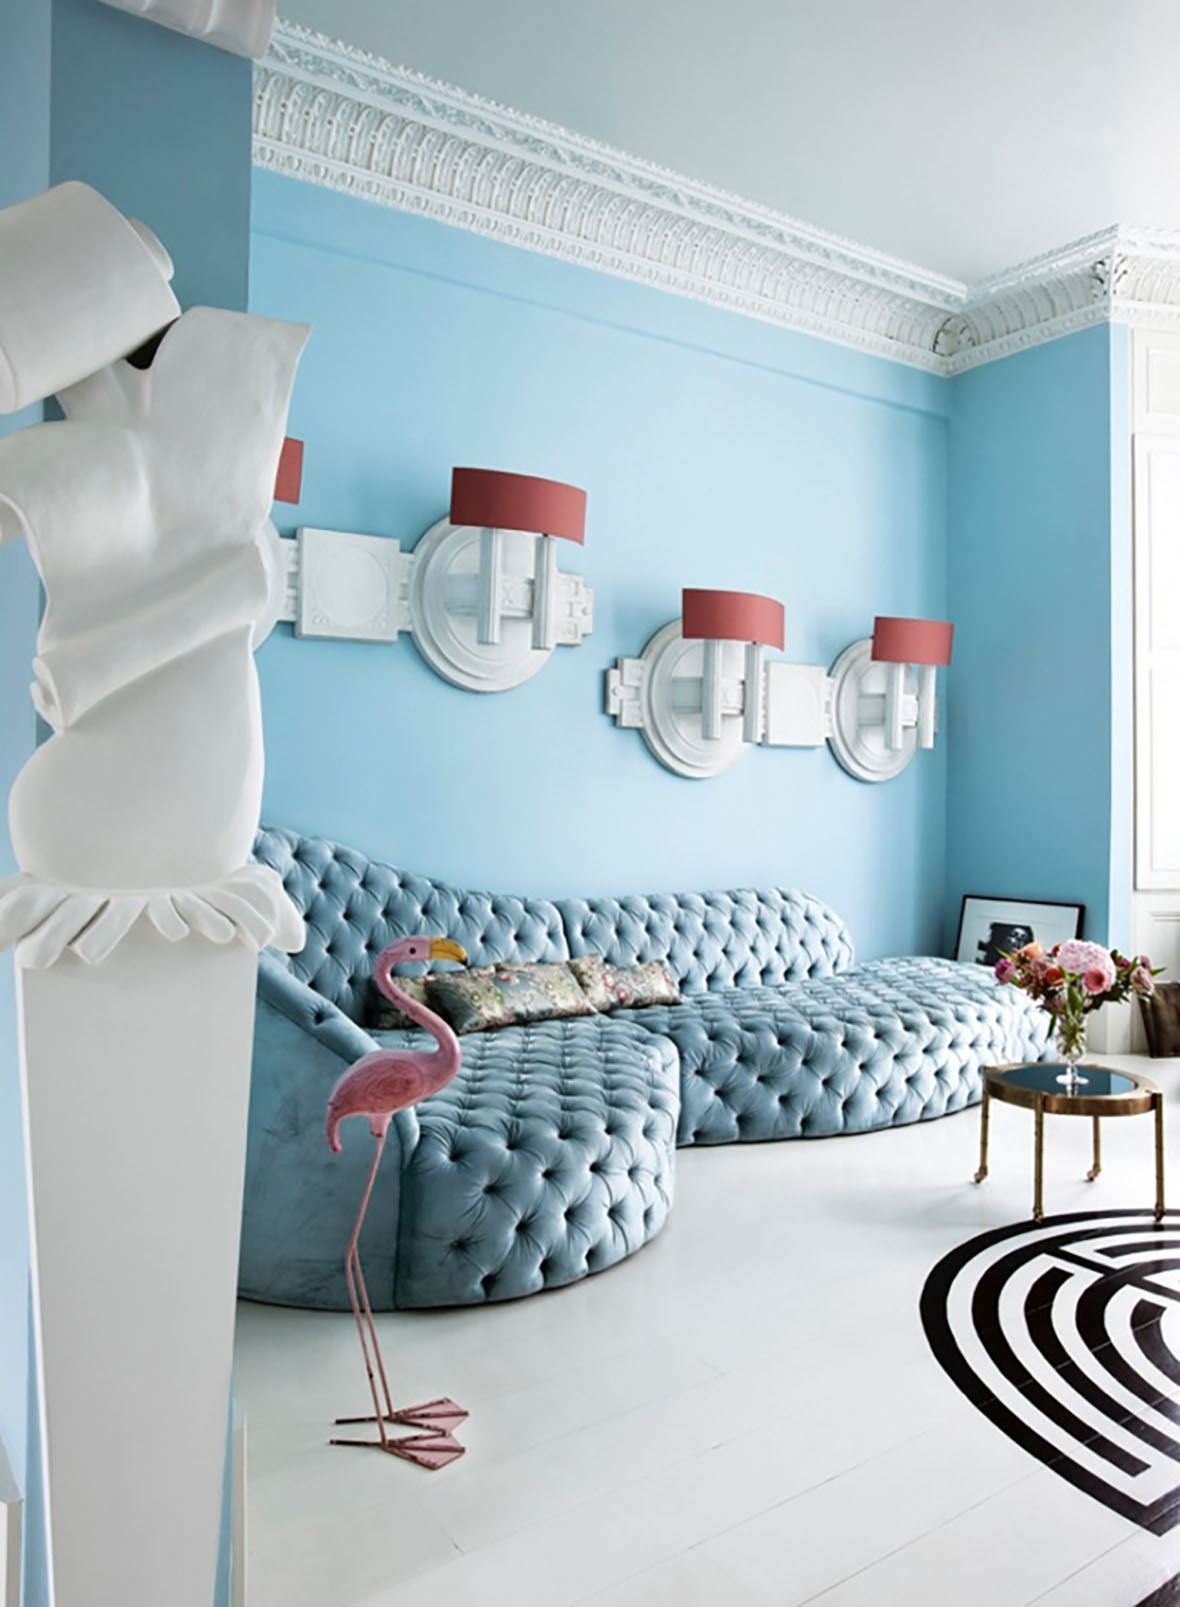 01-this-unique-apartment-in-done-in-delicate-light-blue-shades-its-full-of-light-and-air